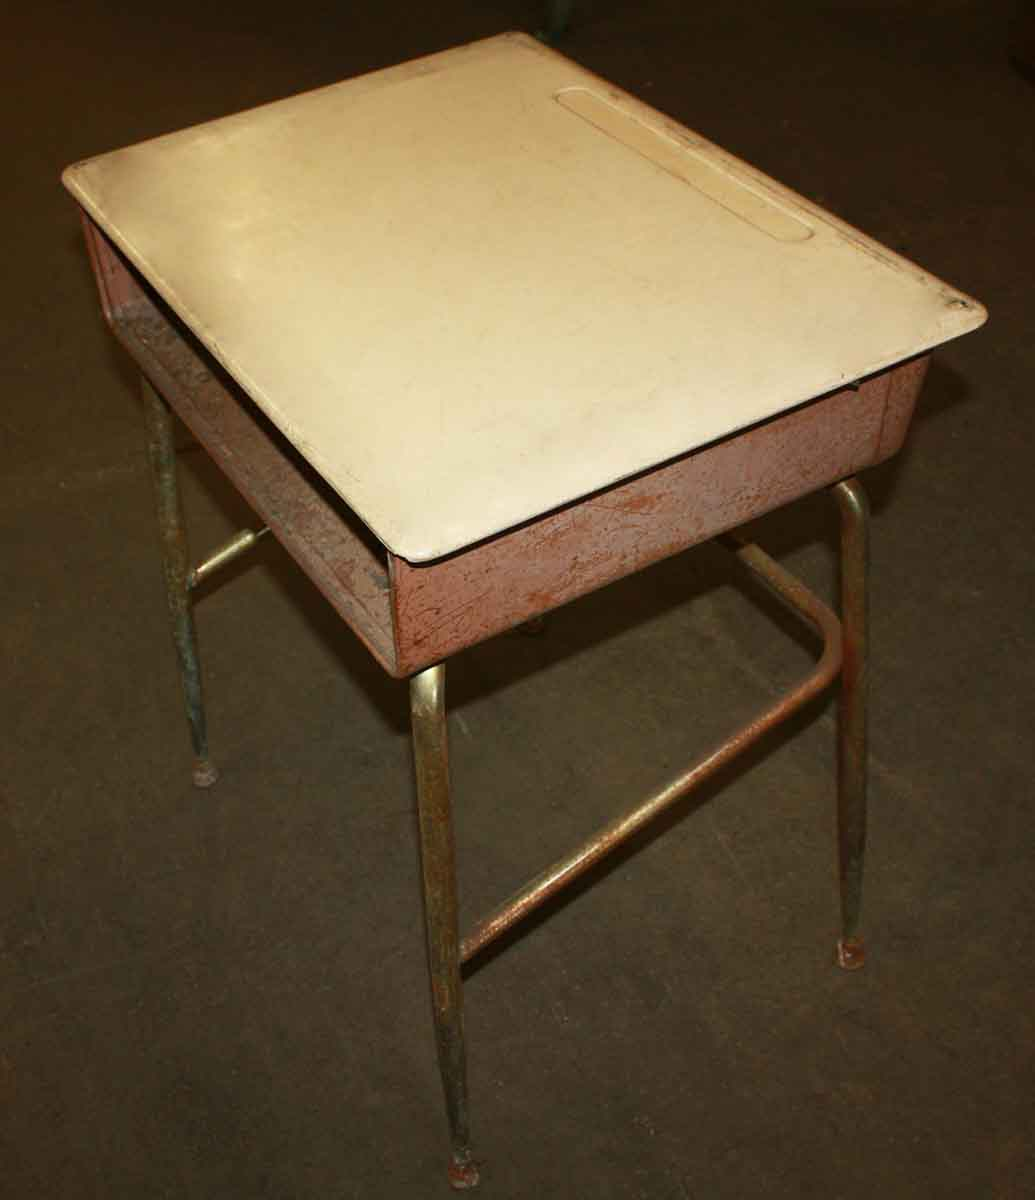 Heywood Wakefield Antique School Desks with Bakelite Top